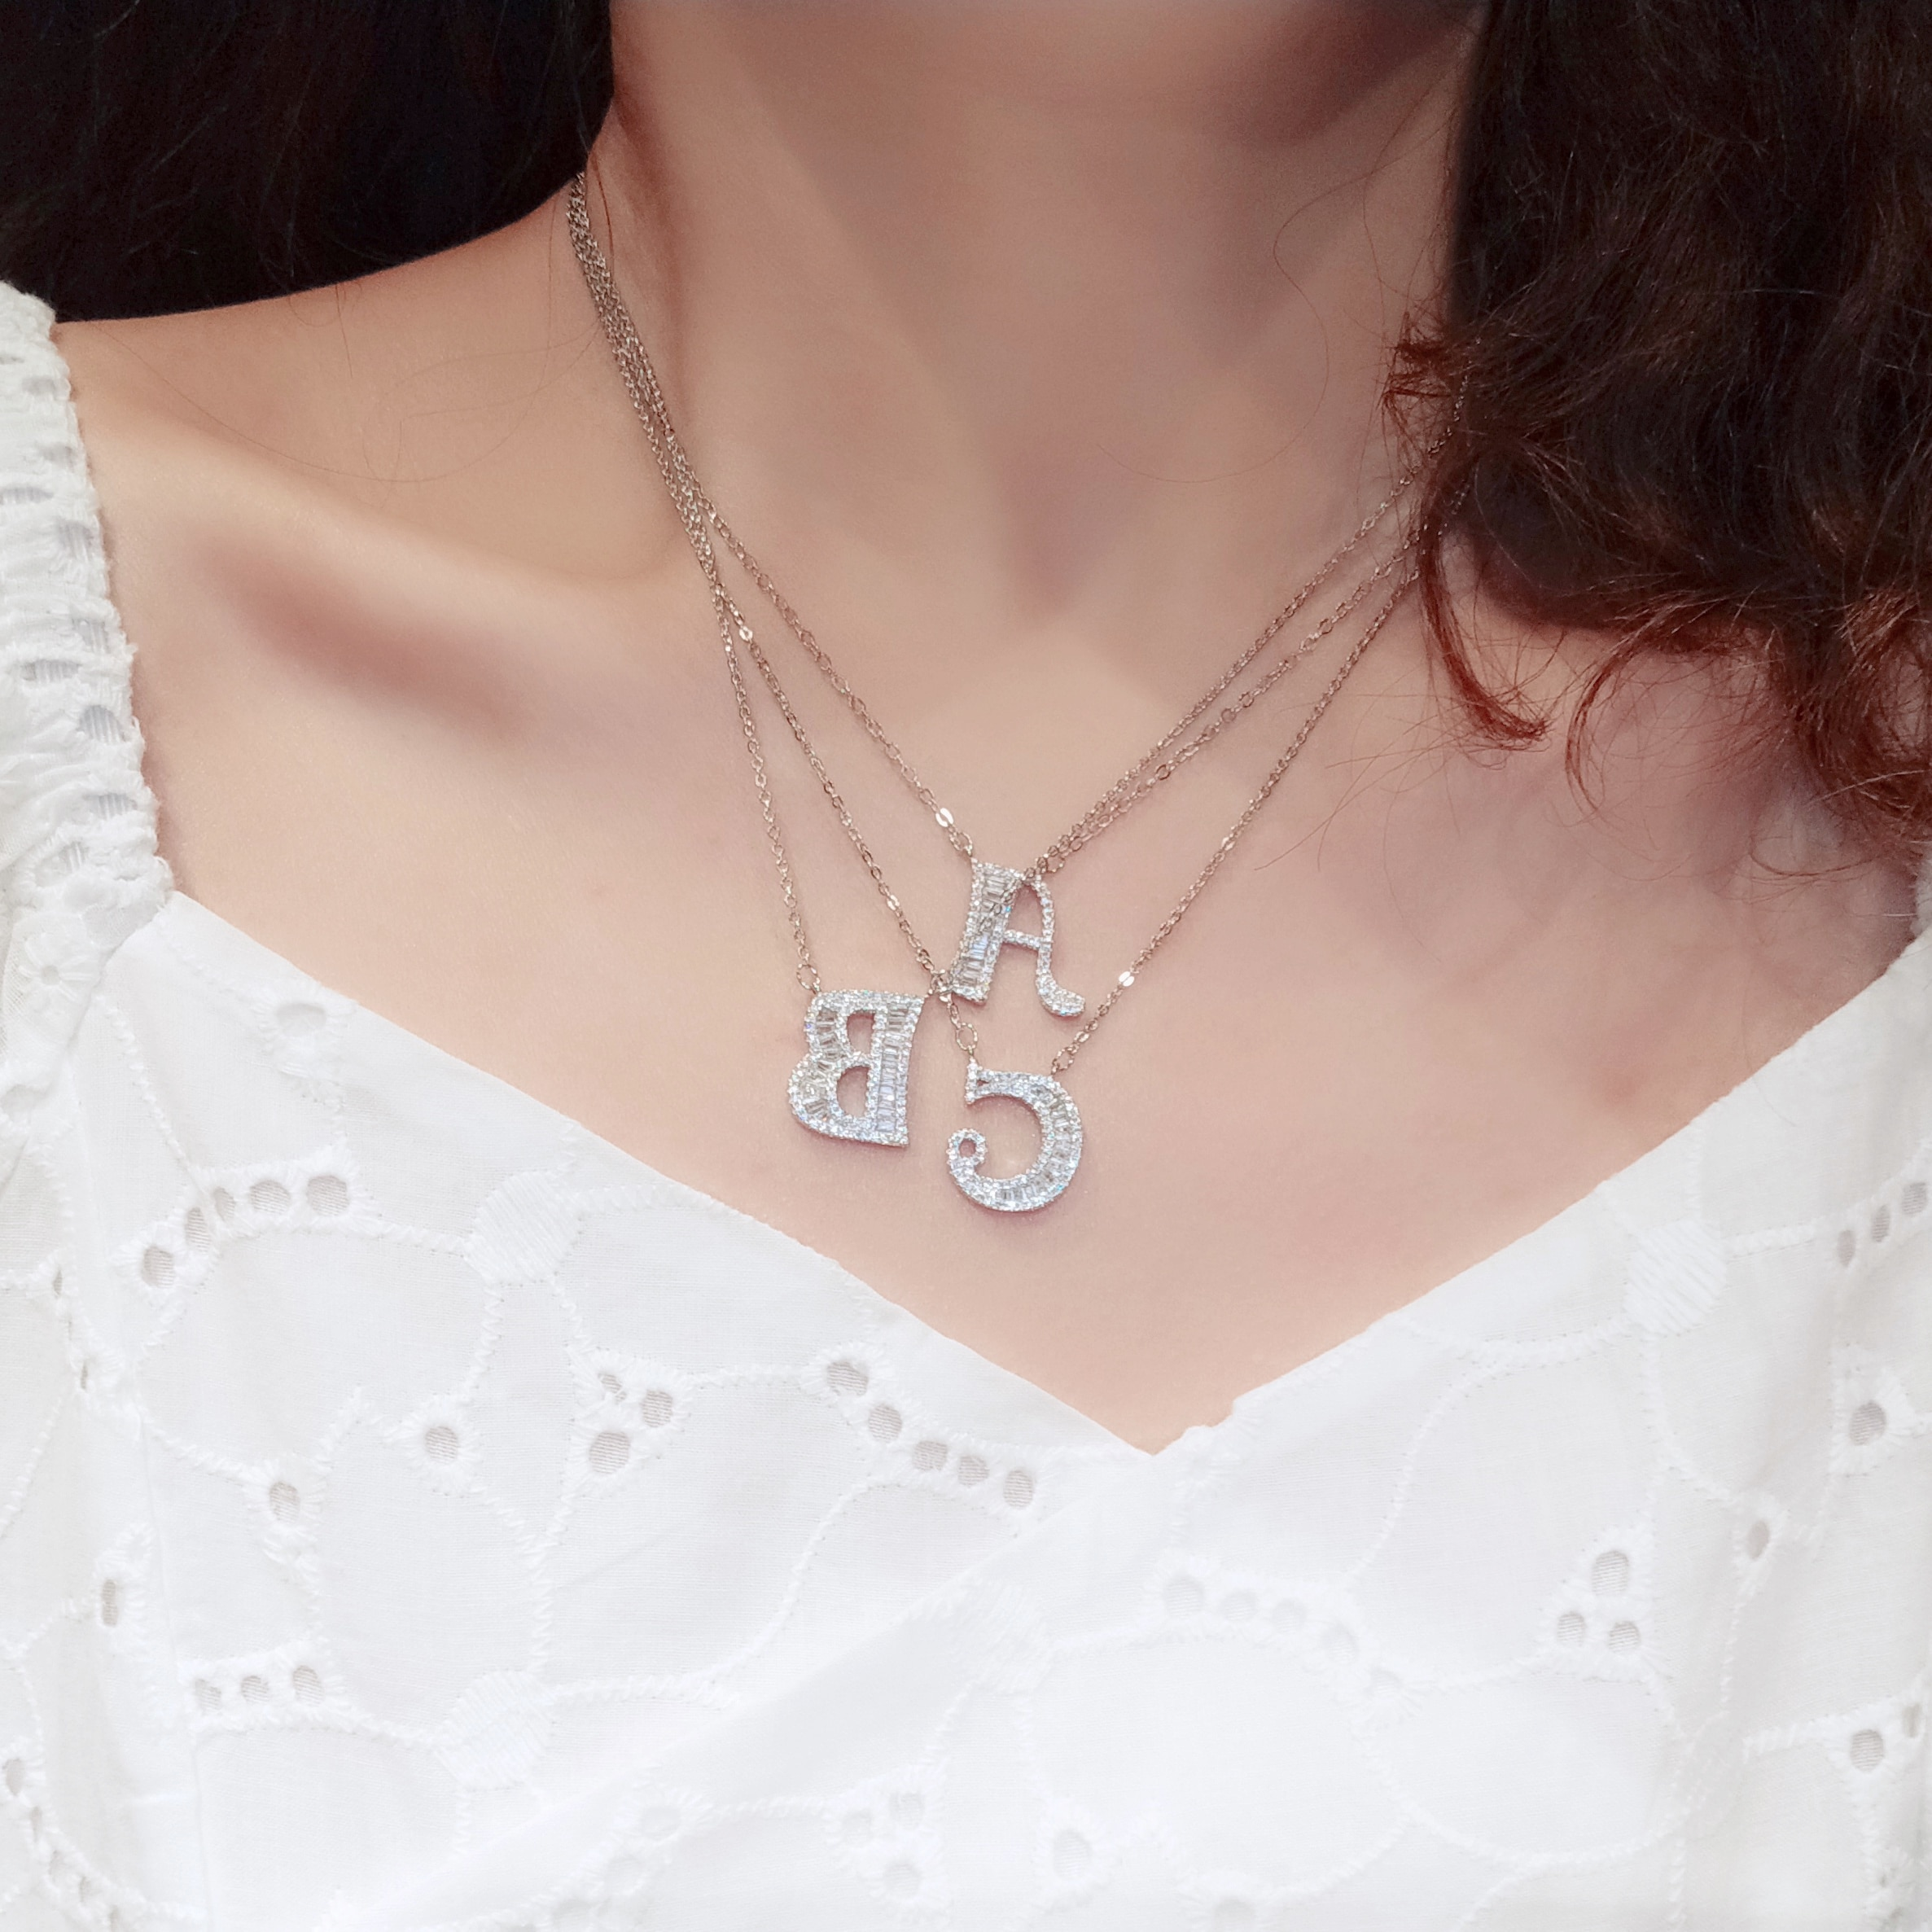 Wife's Romantic Travel Same Style English Letter Necklace Multiple Graceful Online Influencer Clavic